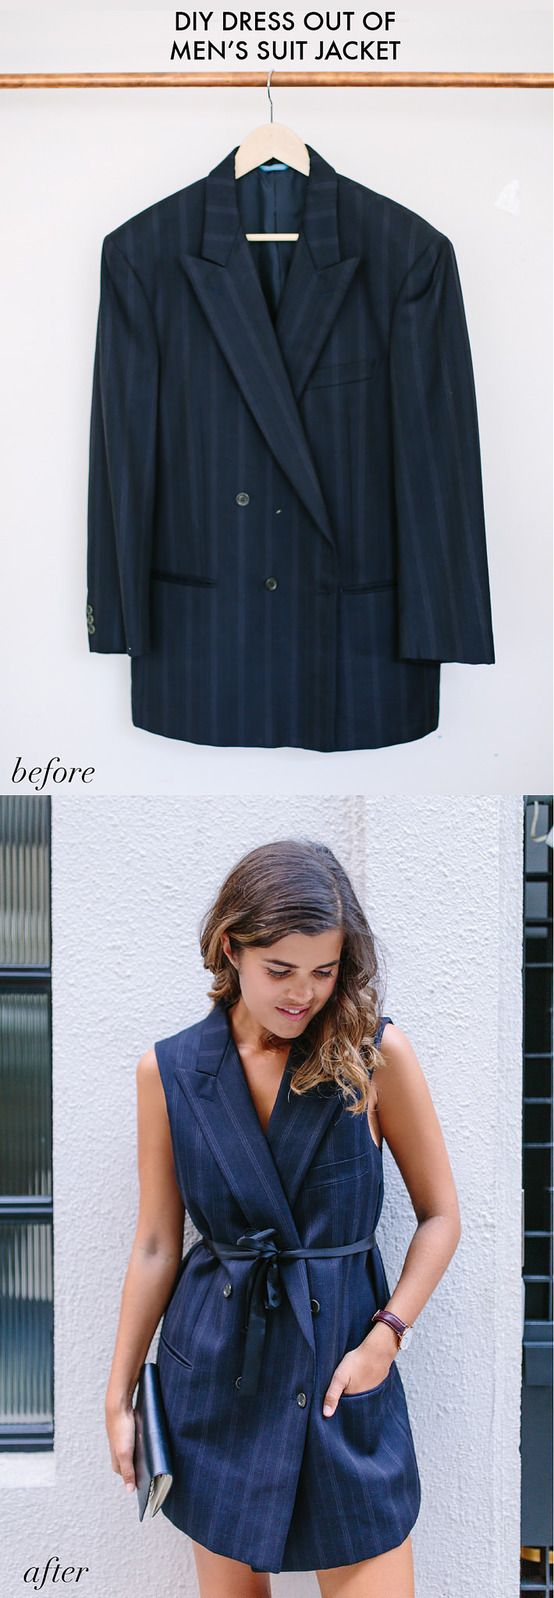 DIY Dress from men's suit jacket